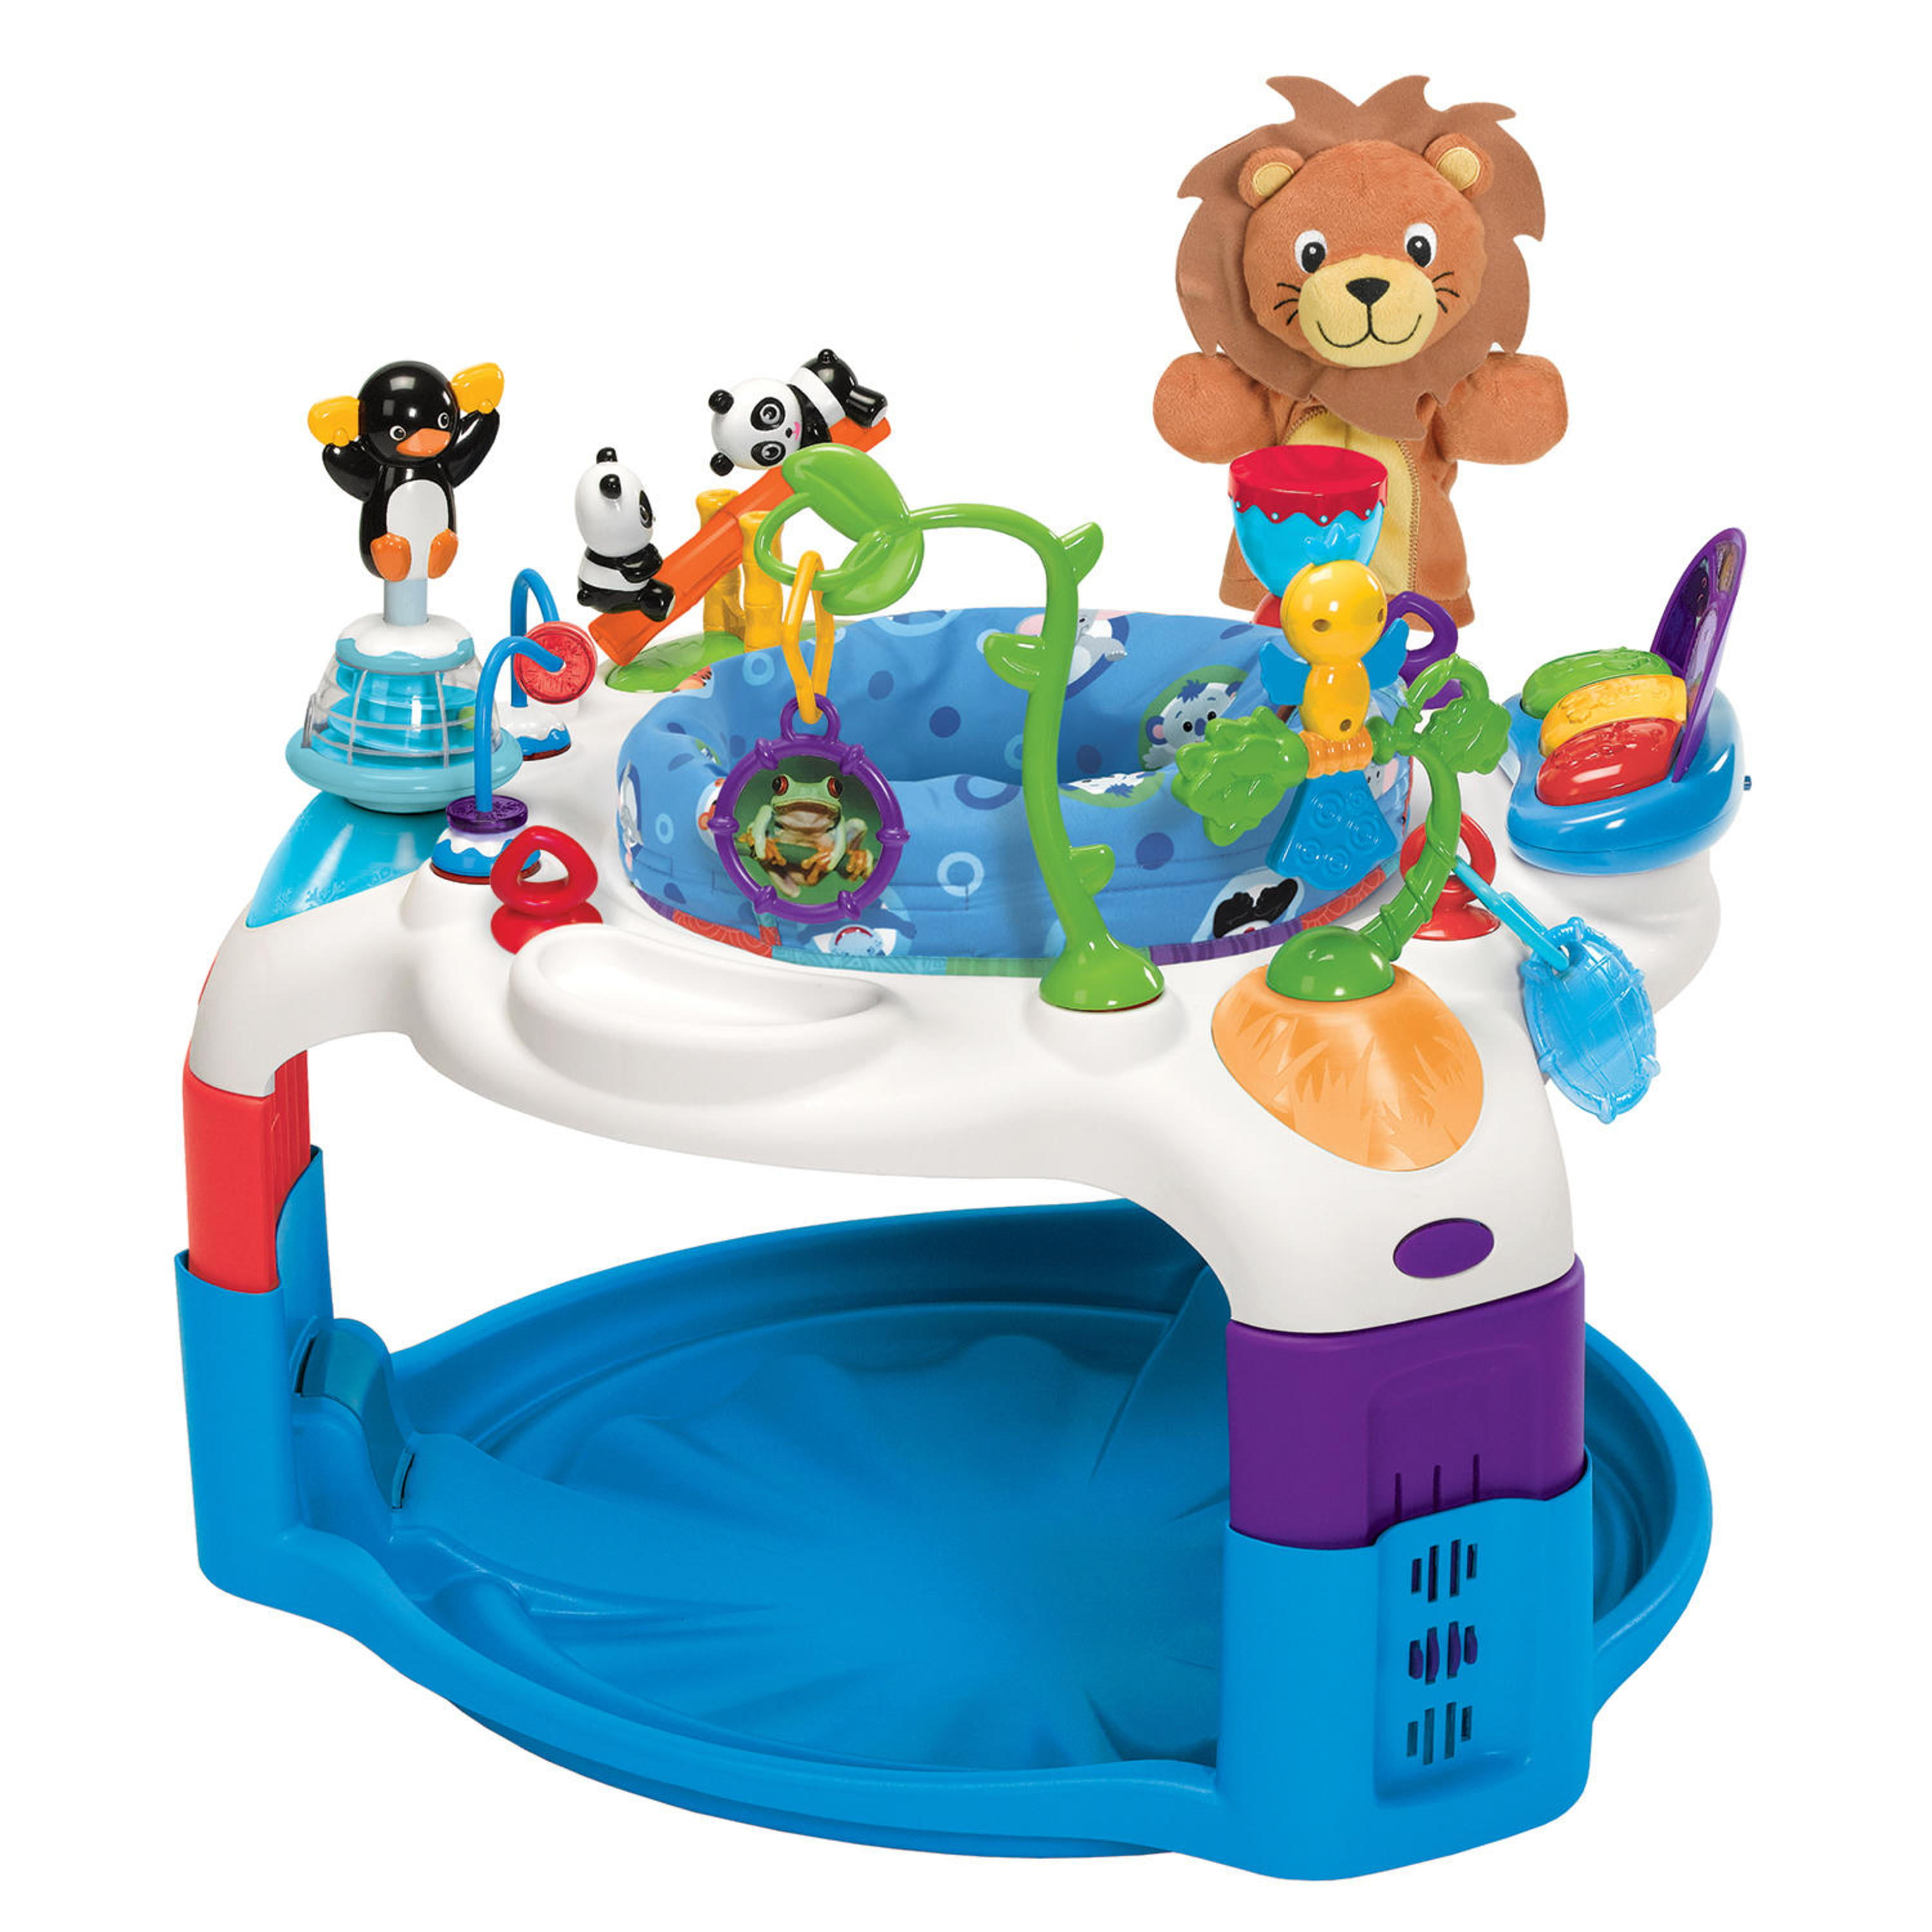 Picture of: Baby Einstein Around The World Discovery Center Activity Saucer Ages 6 Months Walmart Com Walmart Com